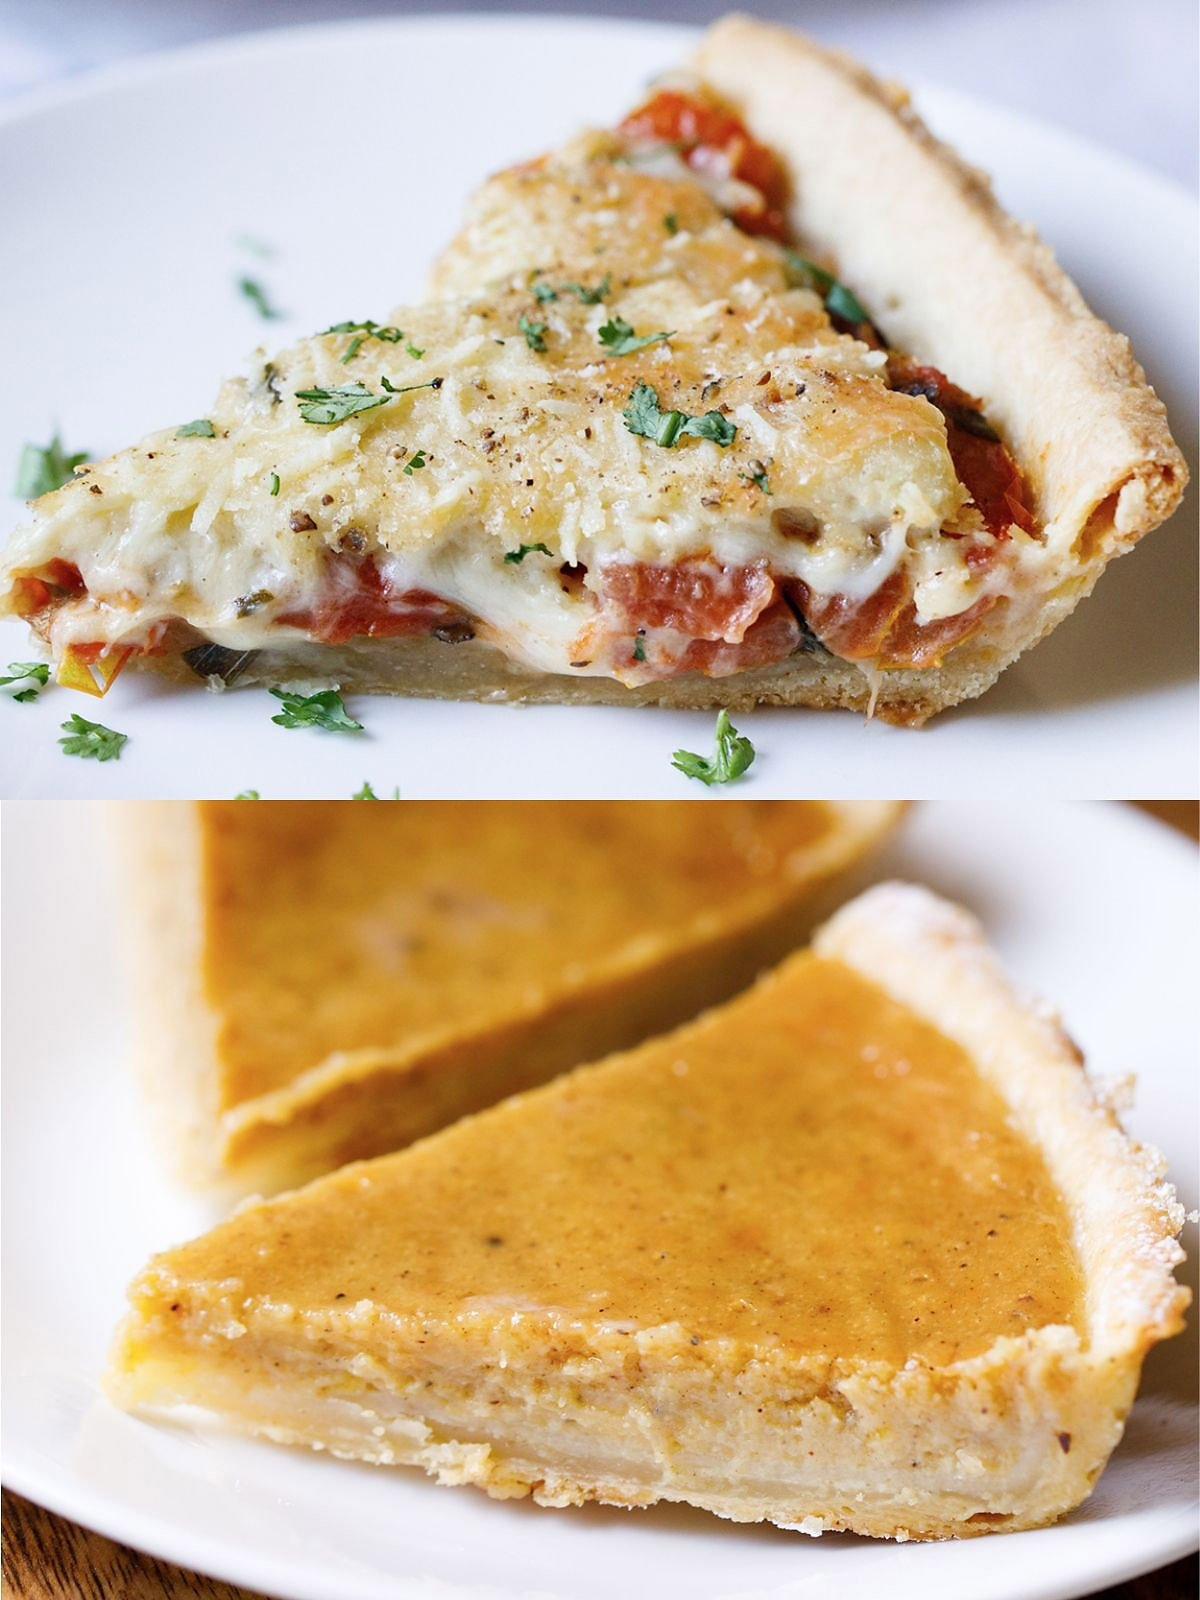 all butter flaky pie crust recipe in two separate applications - the top photograph is a slice of a savory tomato and cheese pie, while the bottom is a picture of several slices of a sweet pumpkin pie